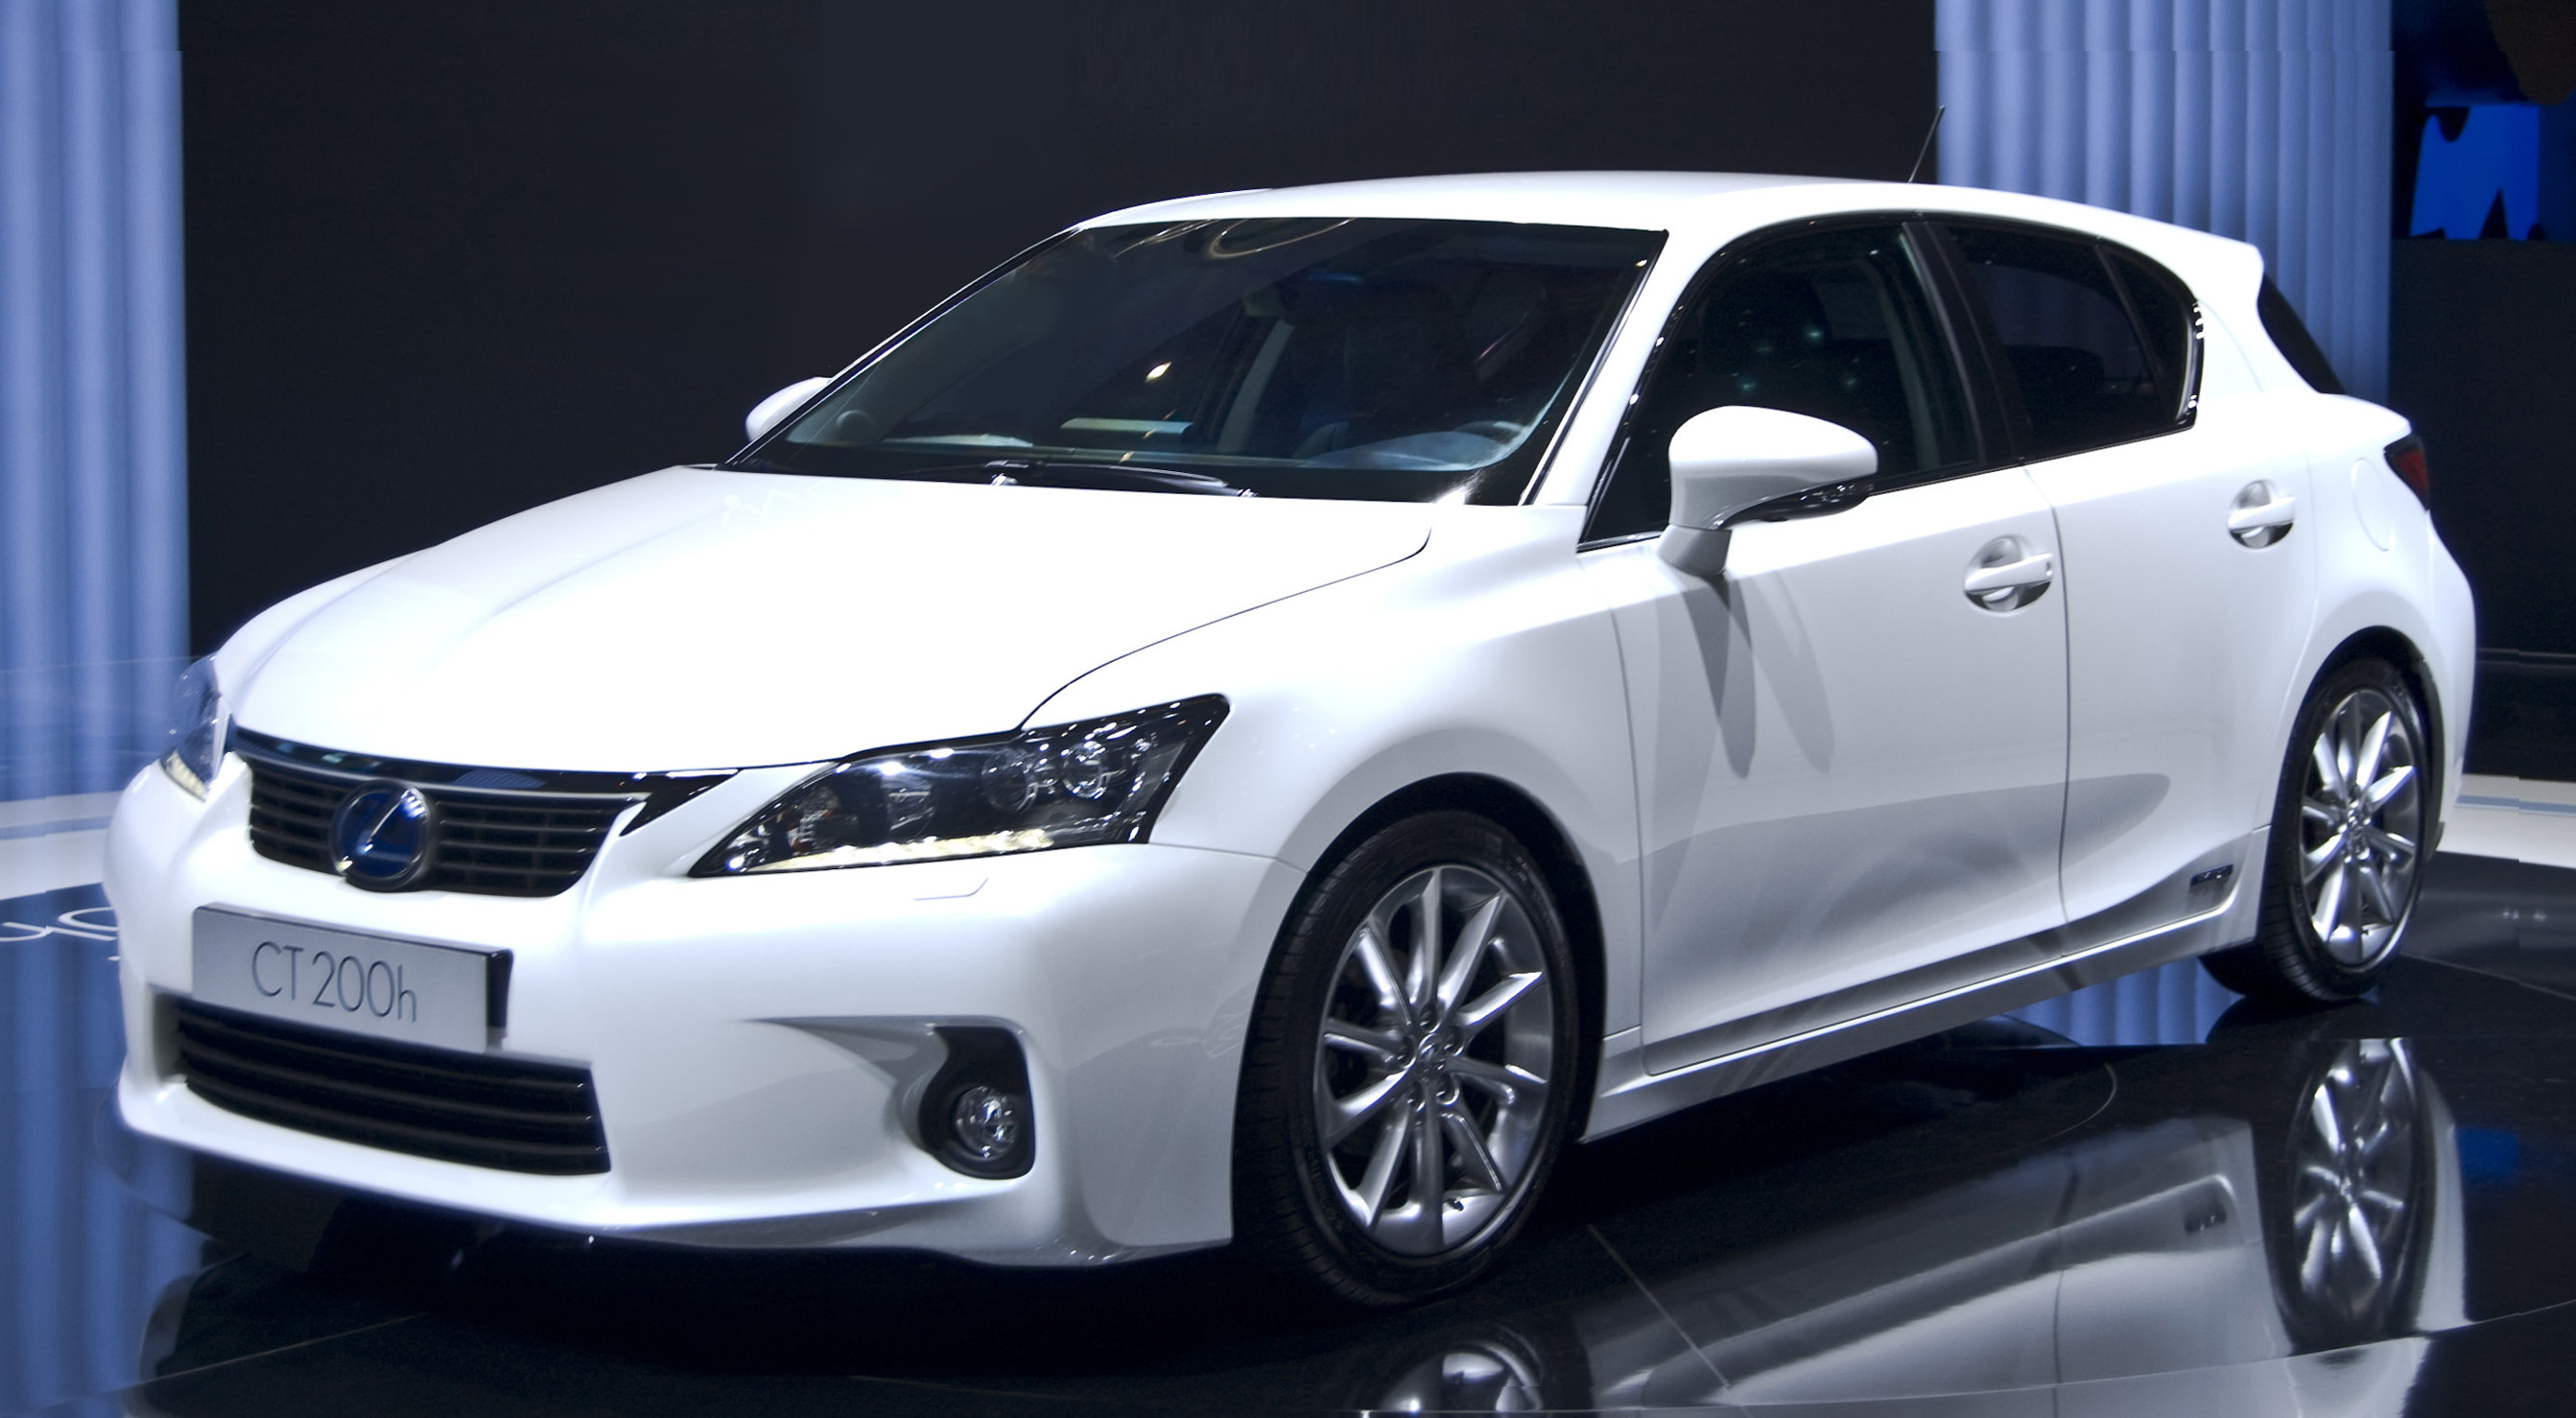 http://upload.wikimedia.org/wikipedia/commons/0/00/Lexus_CT_200h_Geneva.jpg